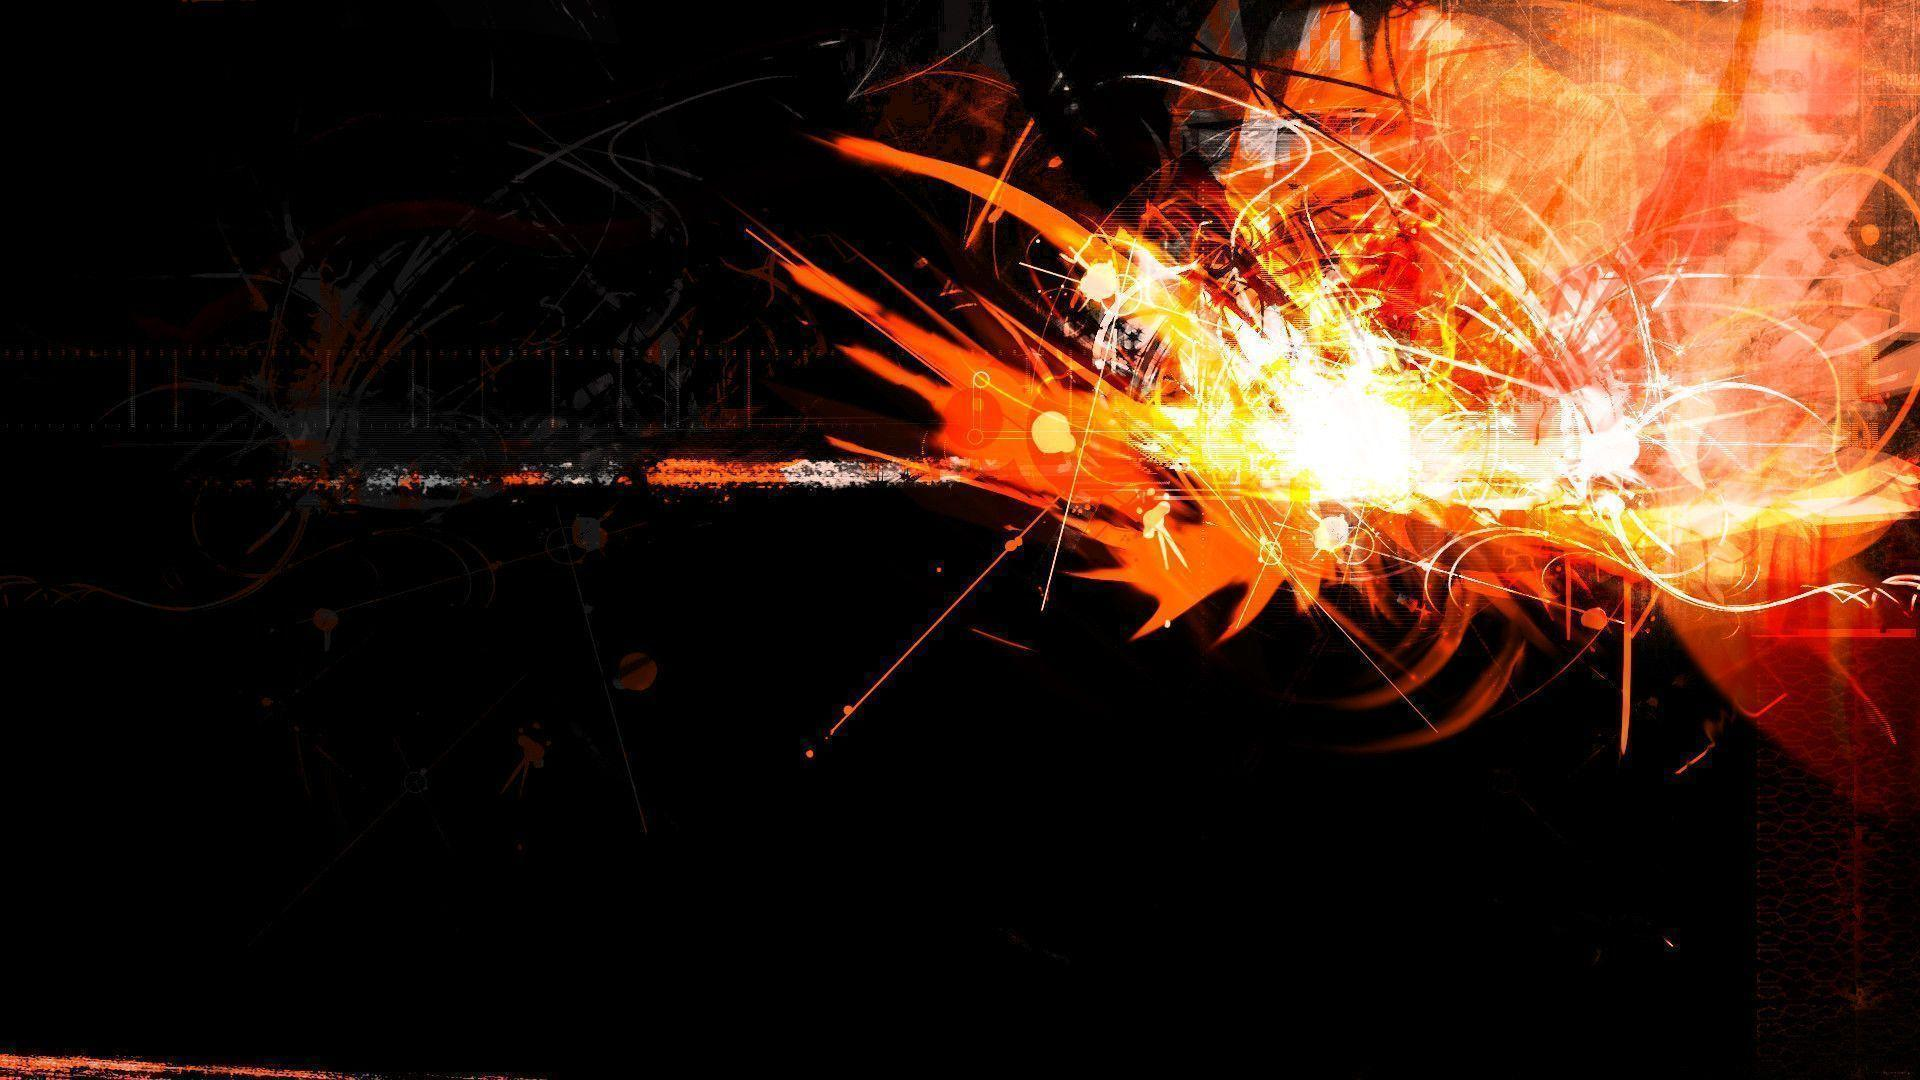 Abstract Backgrounds Pictures For Desktop Wallpapers